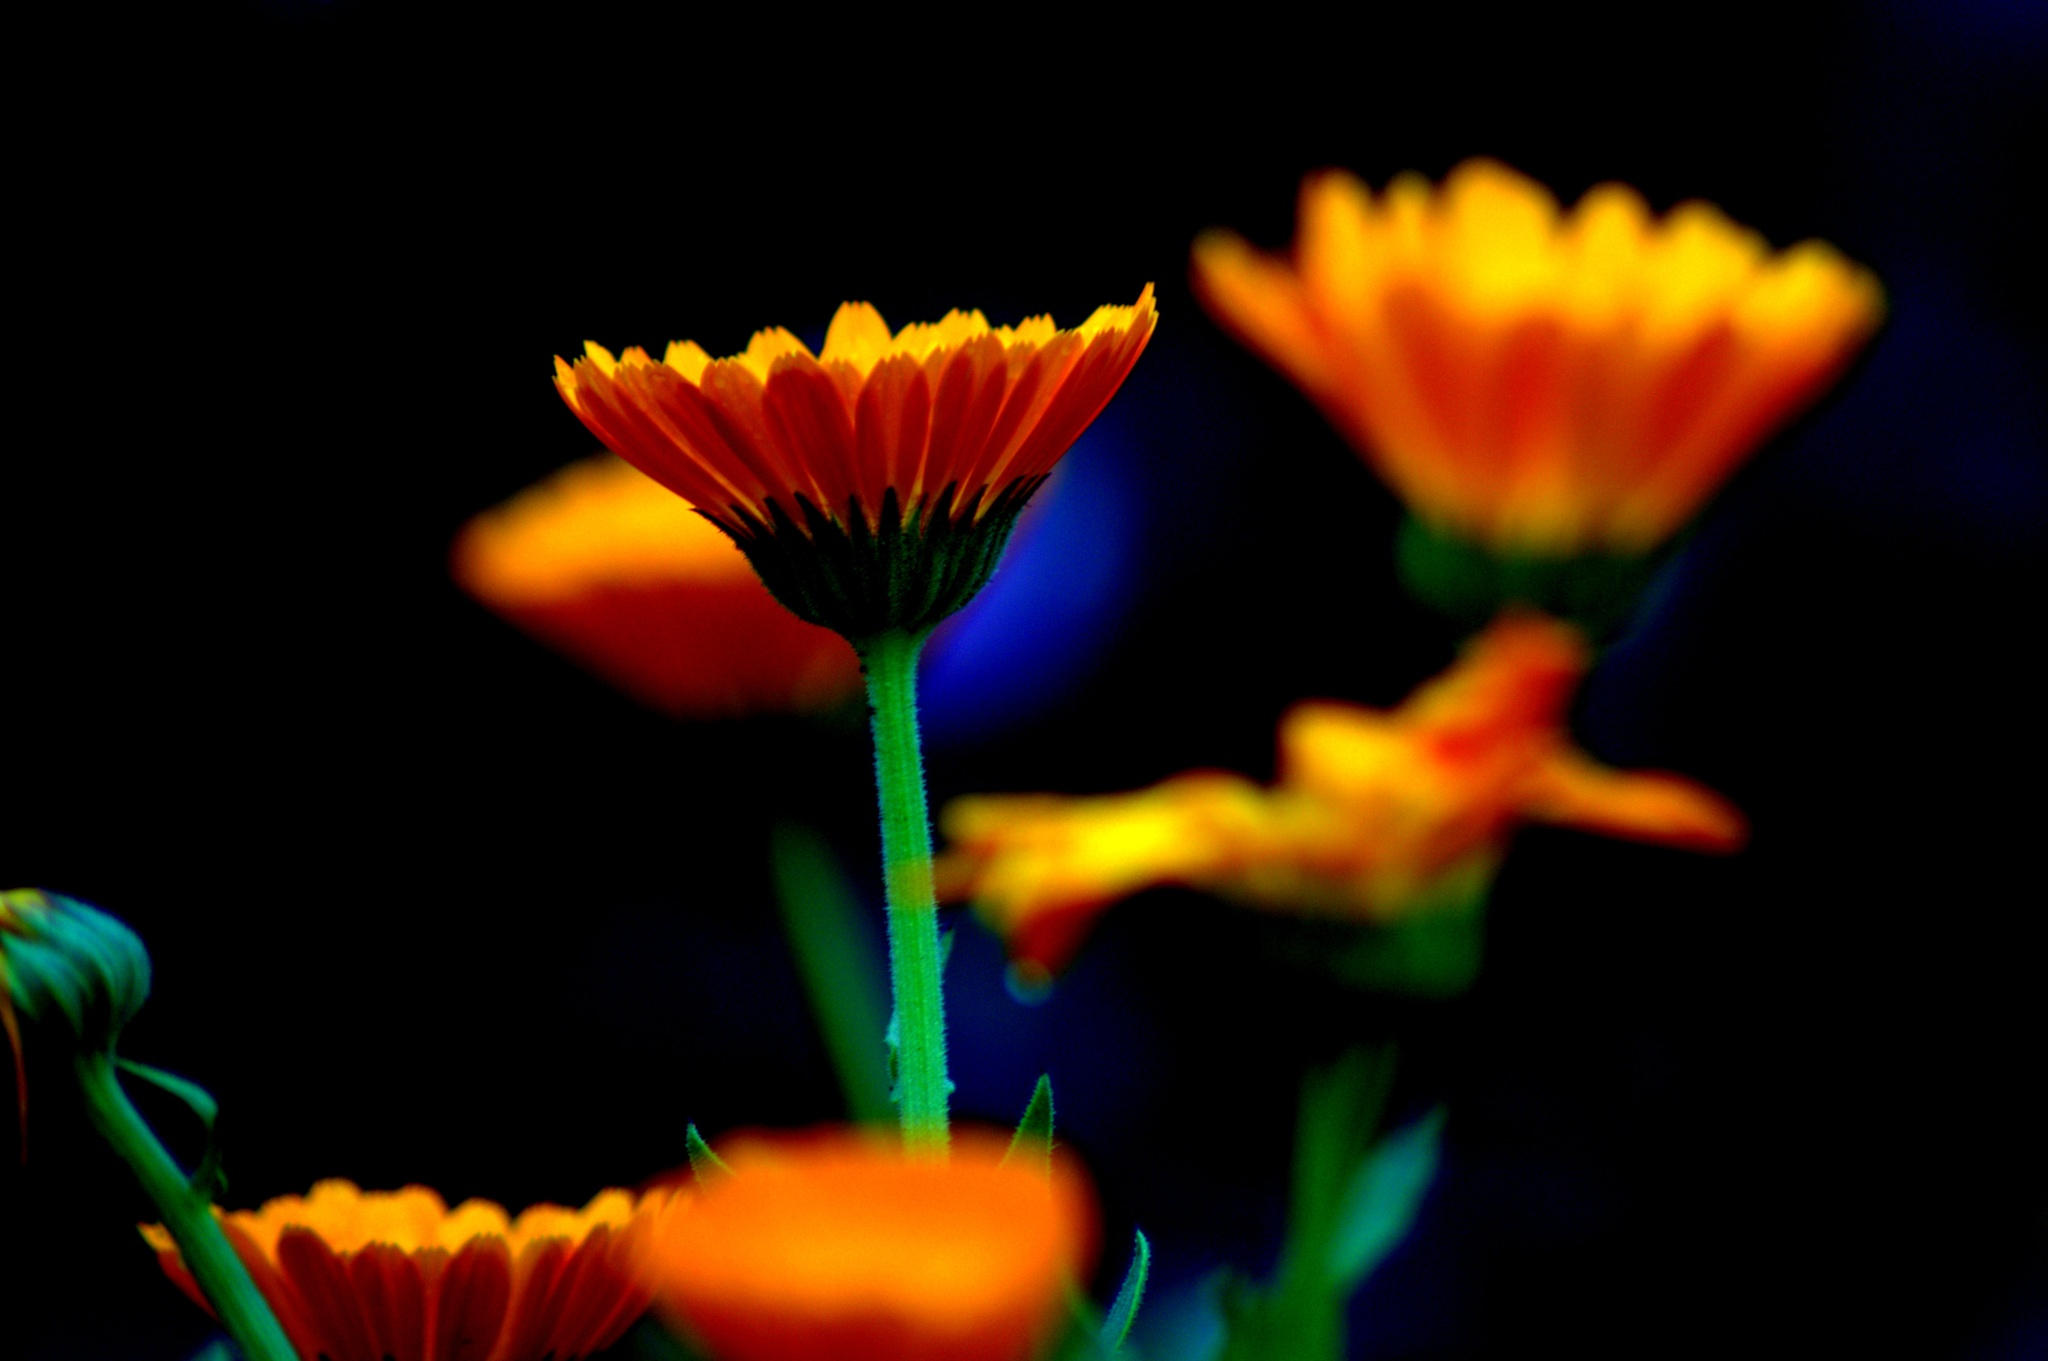 Orange flower1 by Saravanan Veeru